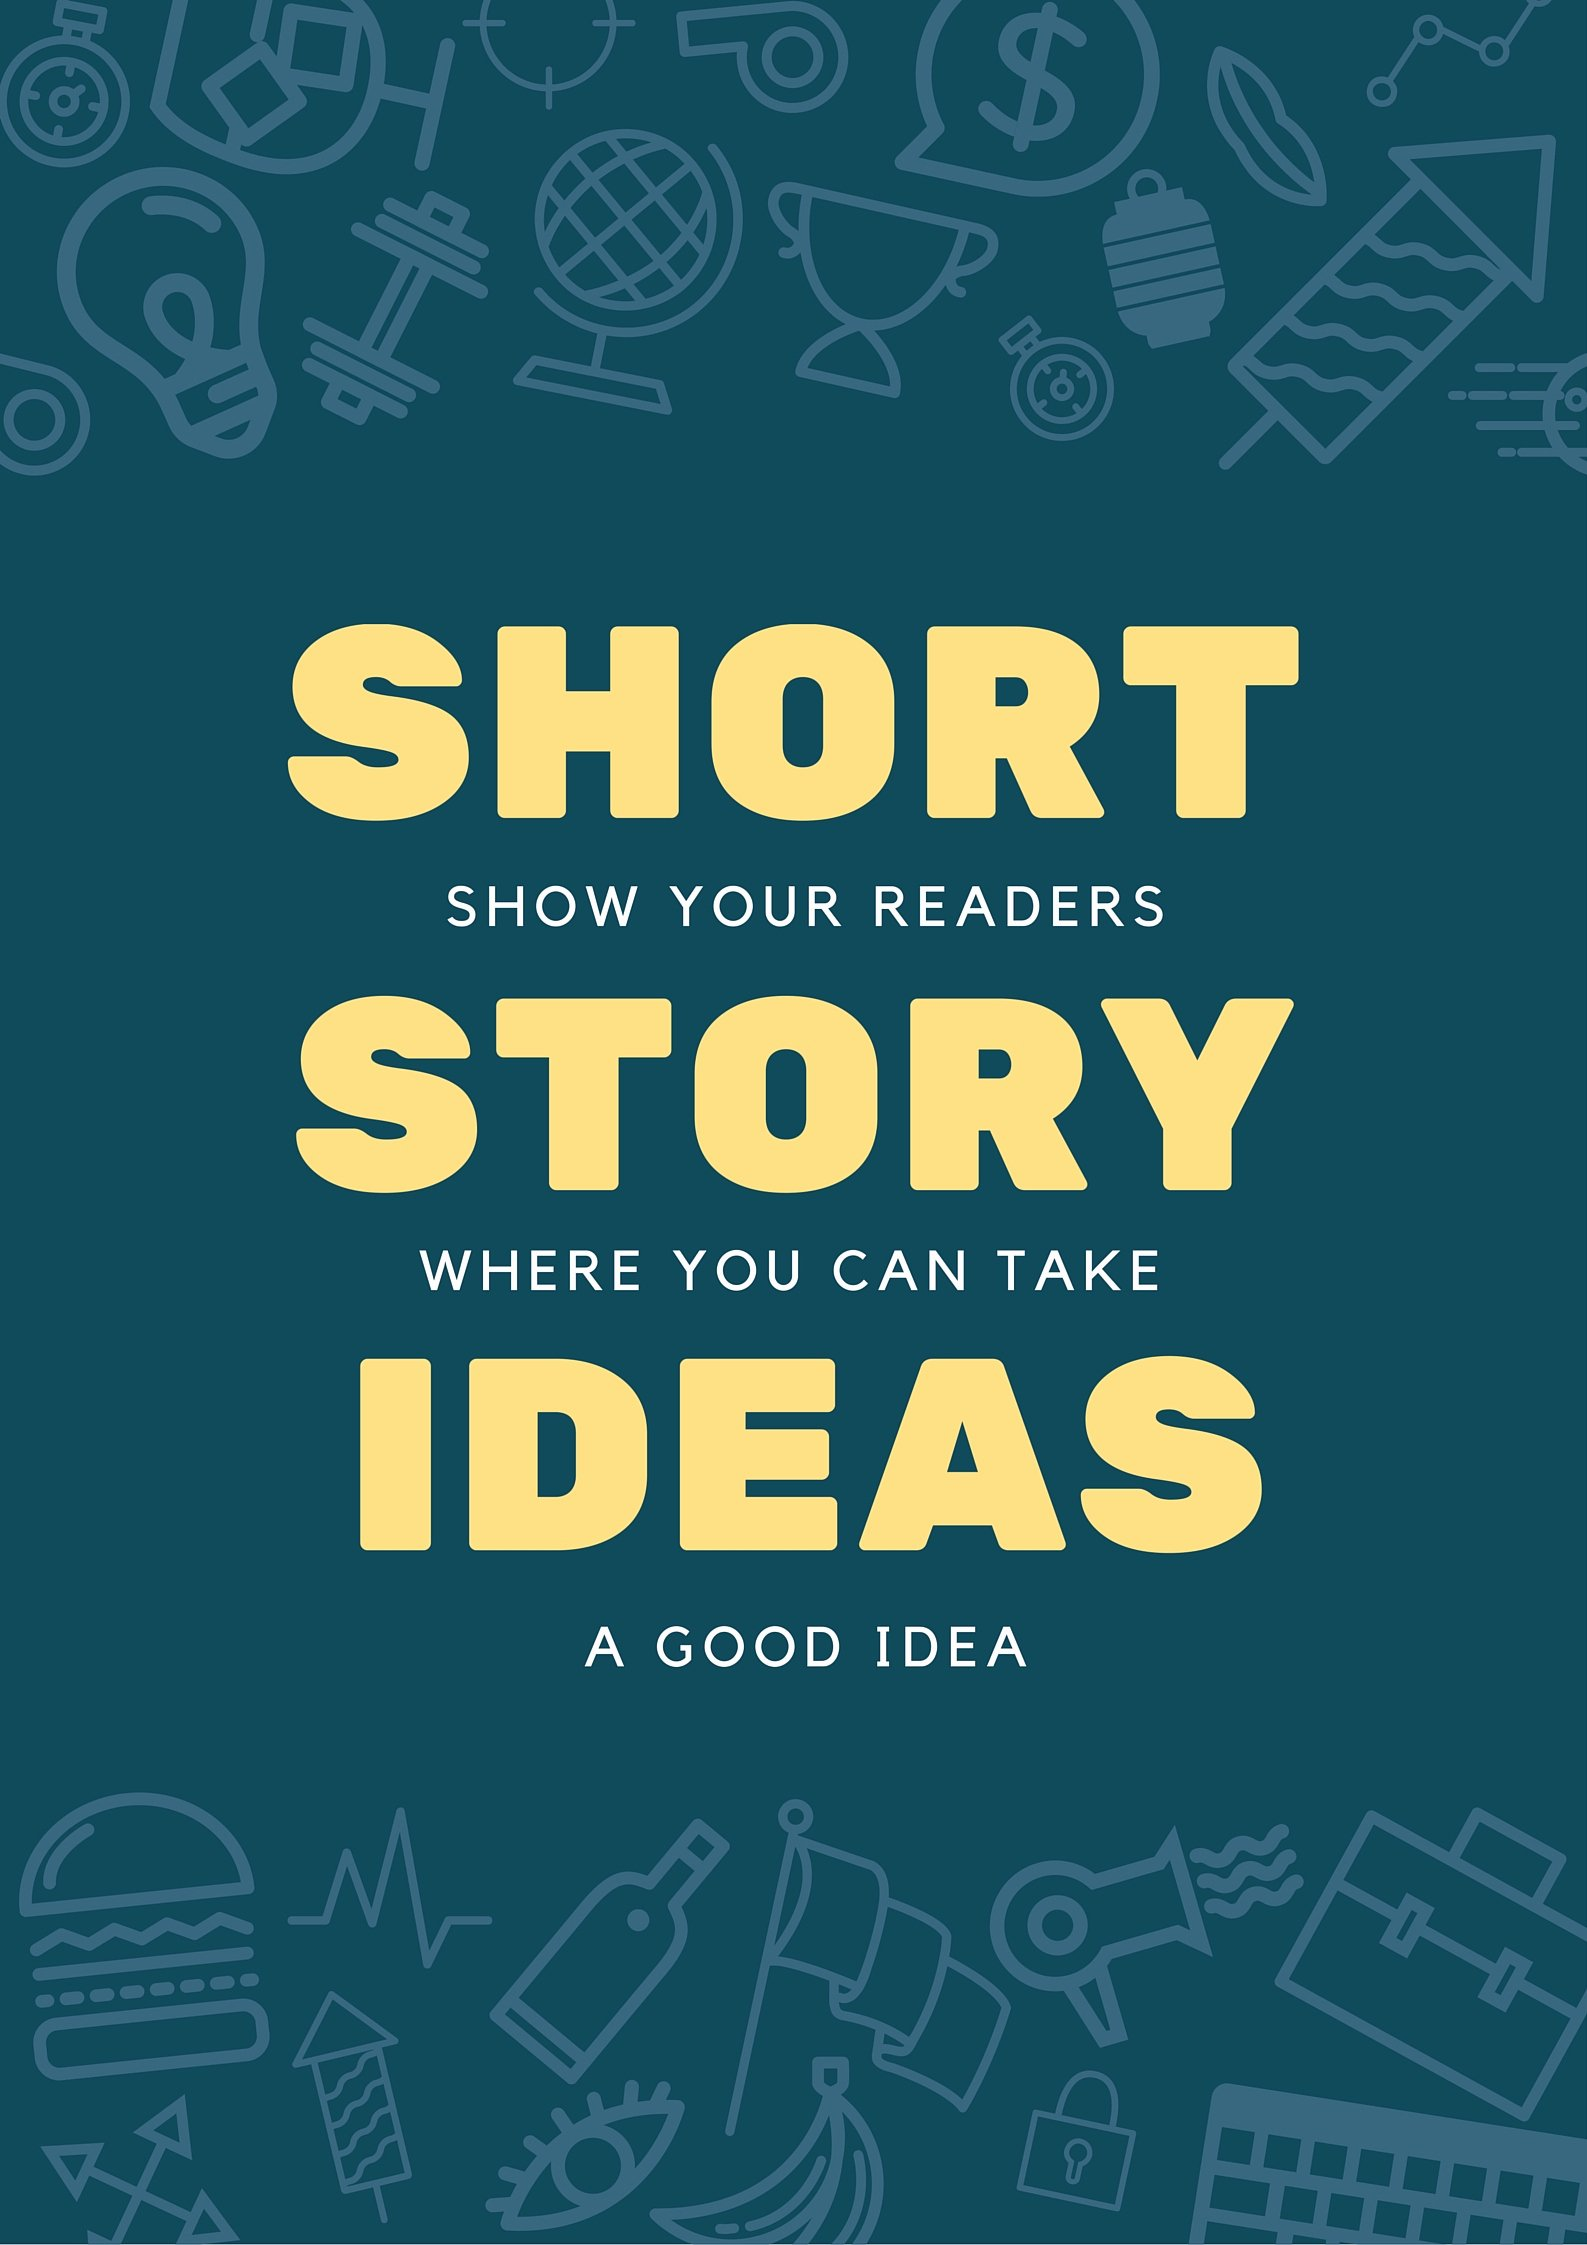 Short Story Essay Ideas Fresh 72 Short Story Ideas to Supercharge Your Writing Bookfox